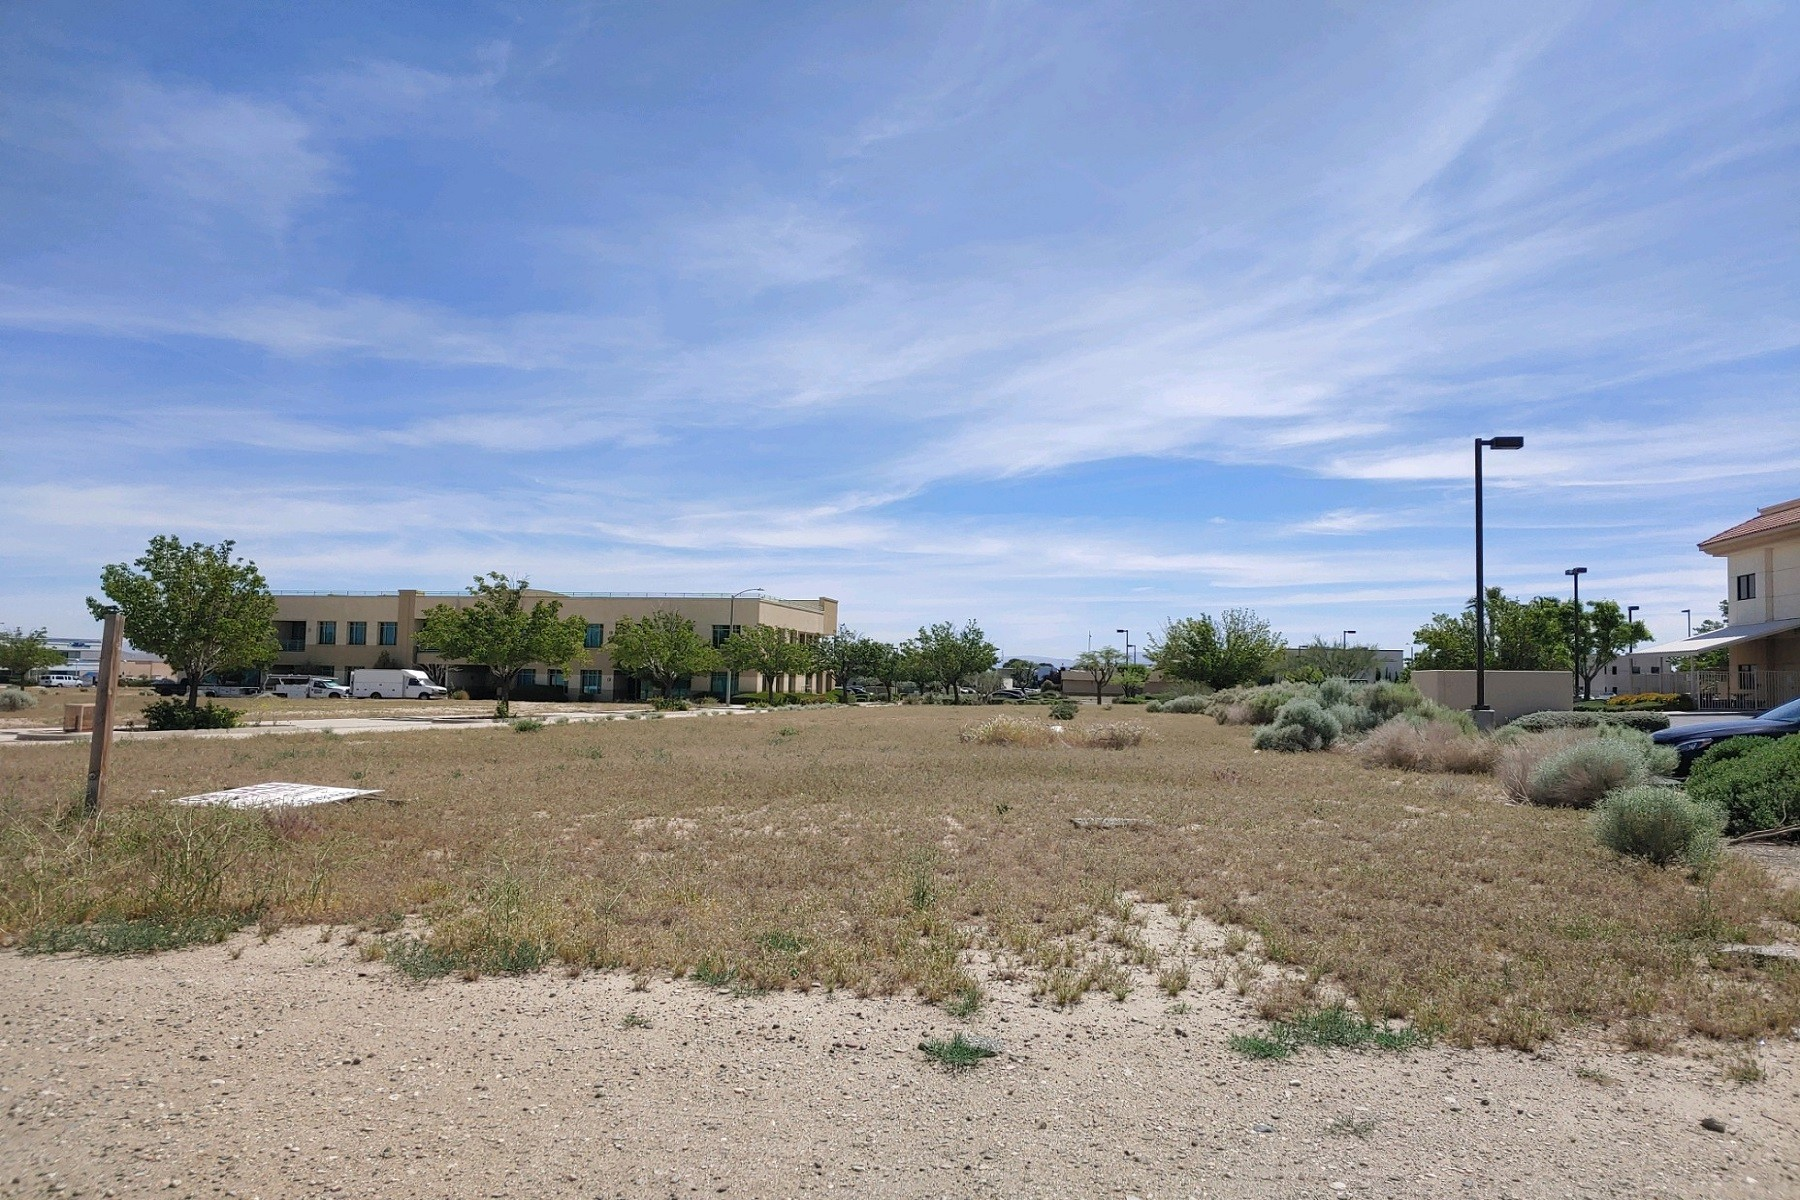 Land for Active at 0 California Avenue, Victorville, California 92392 0 California Avenue Victorville, California 92392 United States